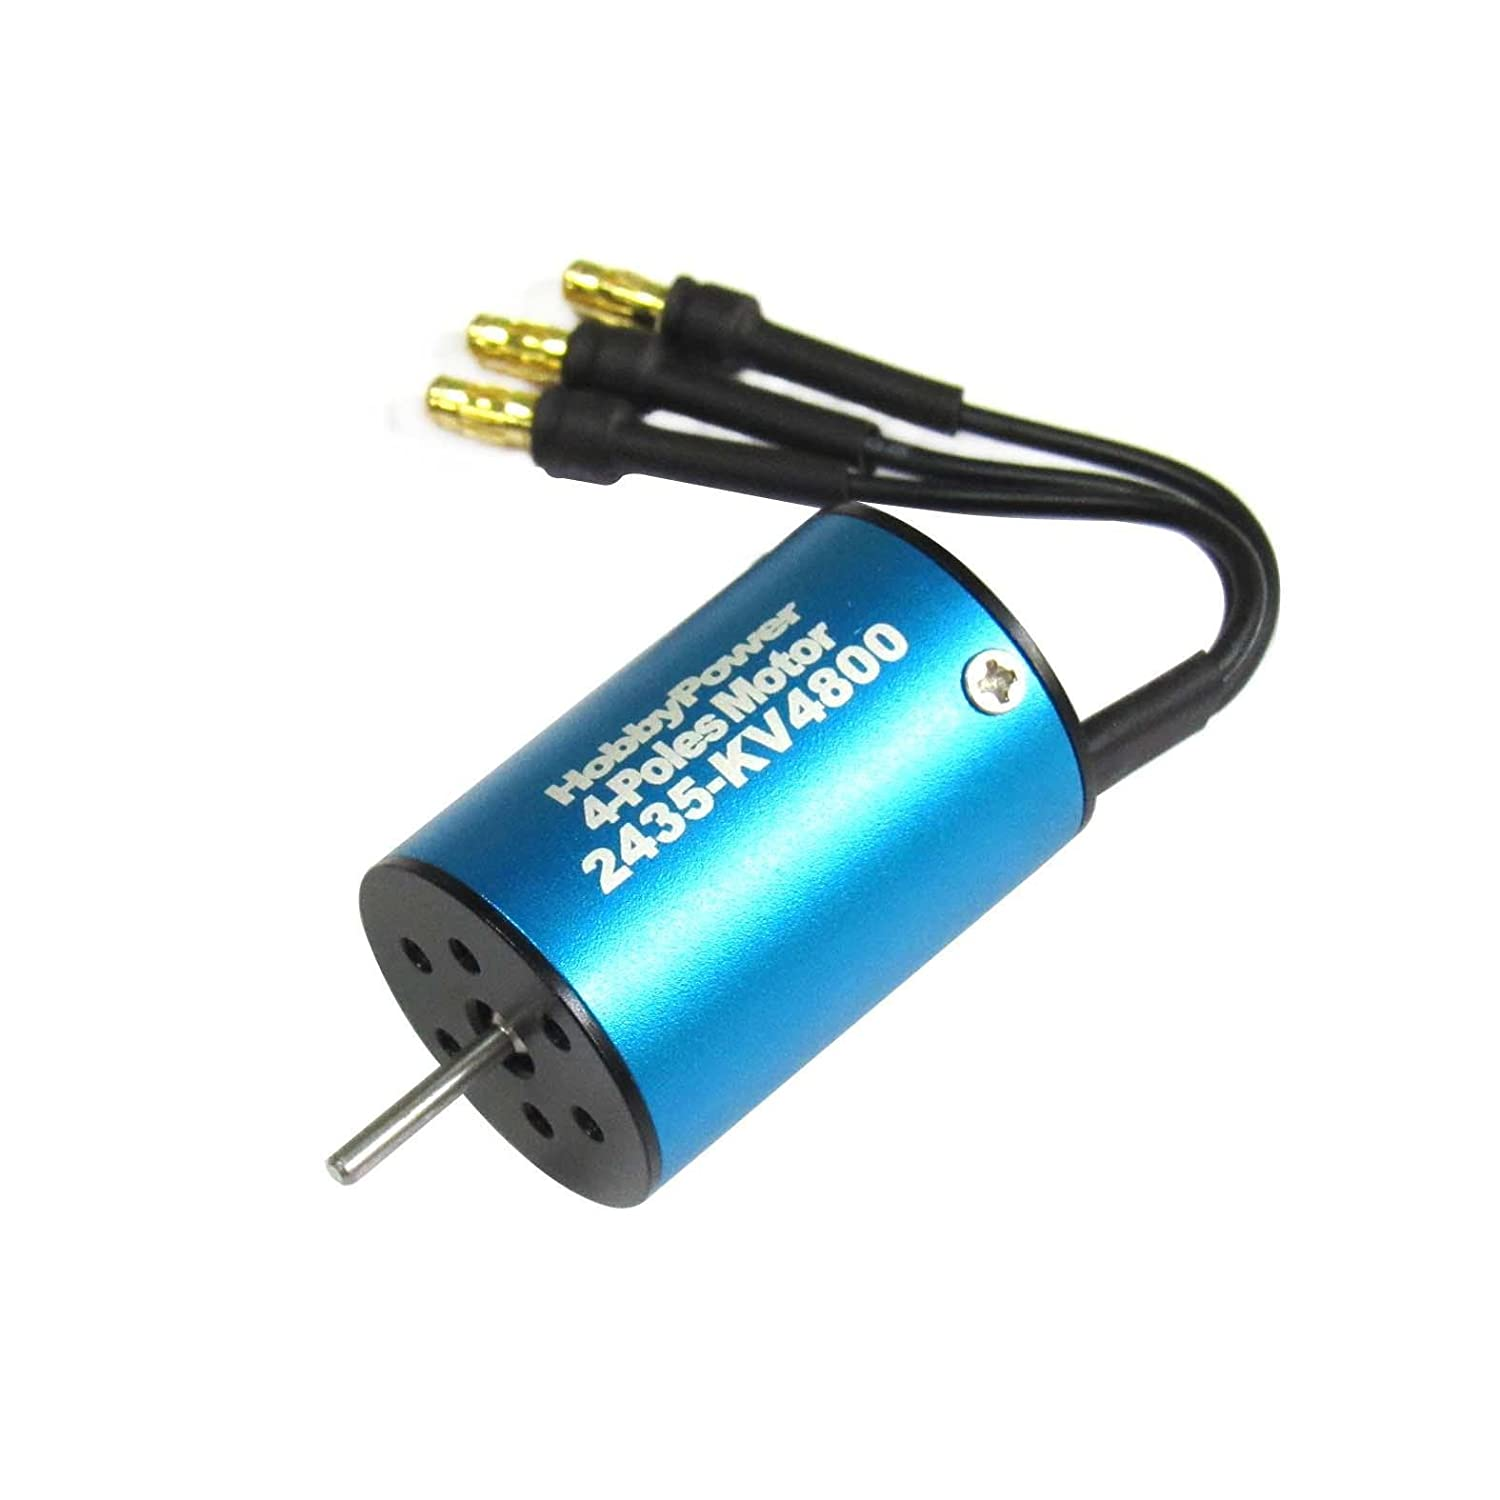 Amazon.com: Hobbypower 2435 4800KV 4-Pole Brushless Motor for 1/18 1/16 RC  Car: Toys & Games